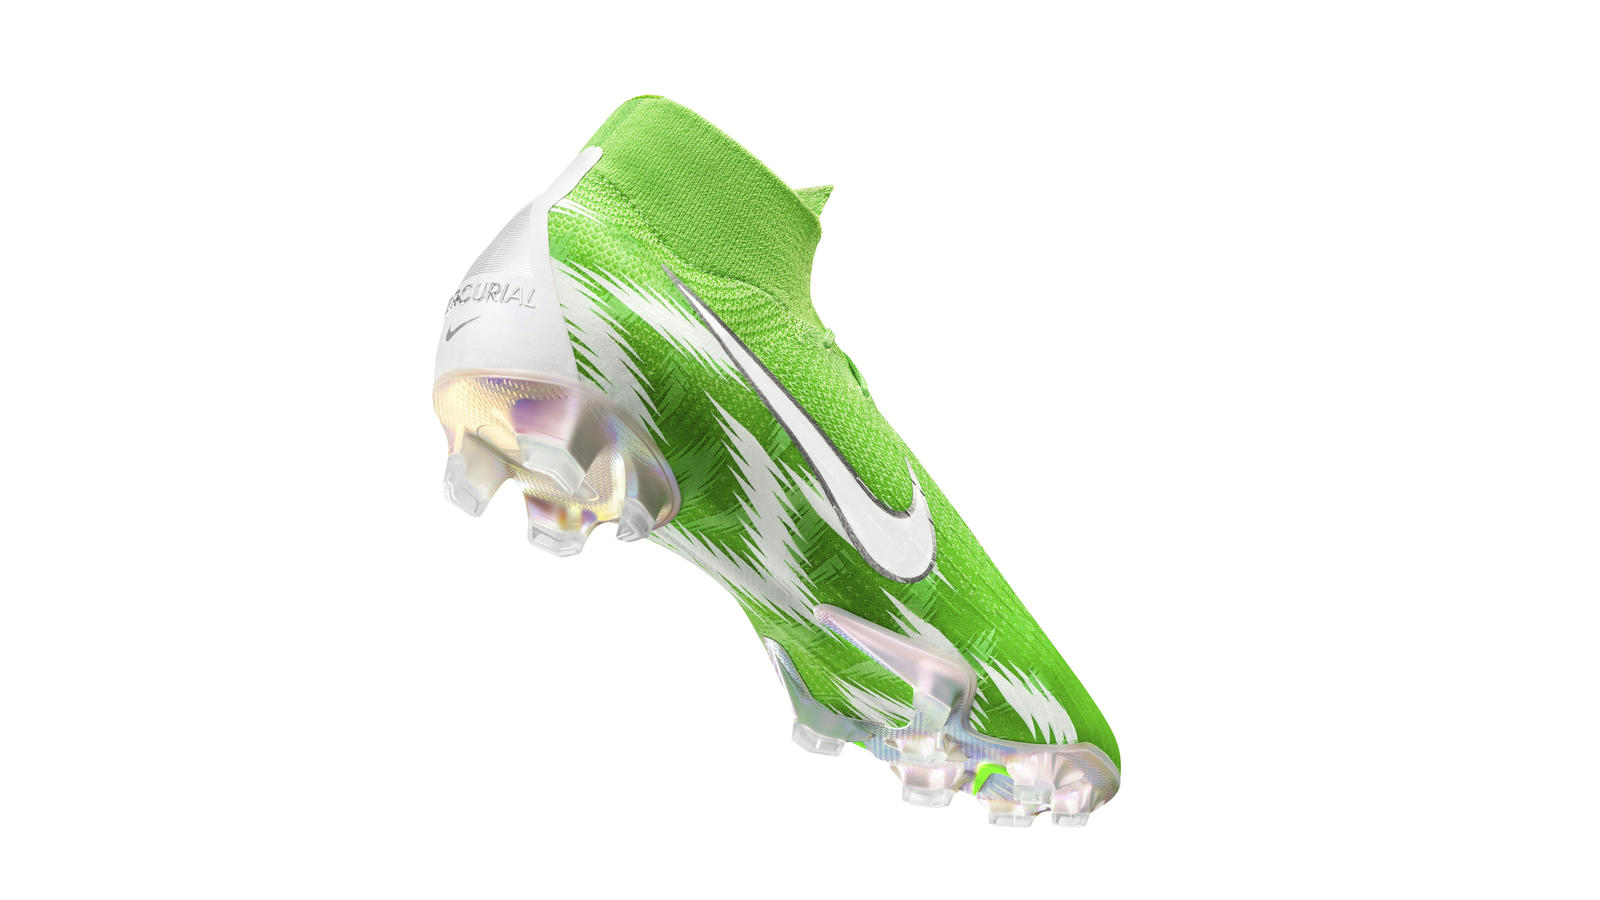 Su18 gfb hypernationalnaija mercurialsuperfly12elitefg hero notriangle hd 1600